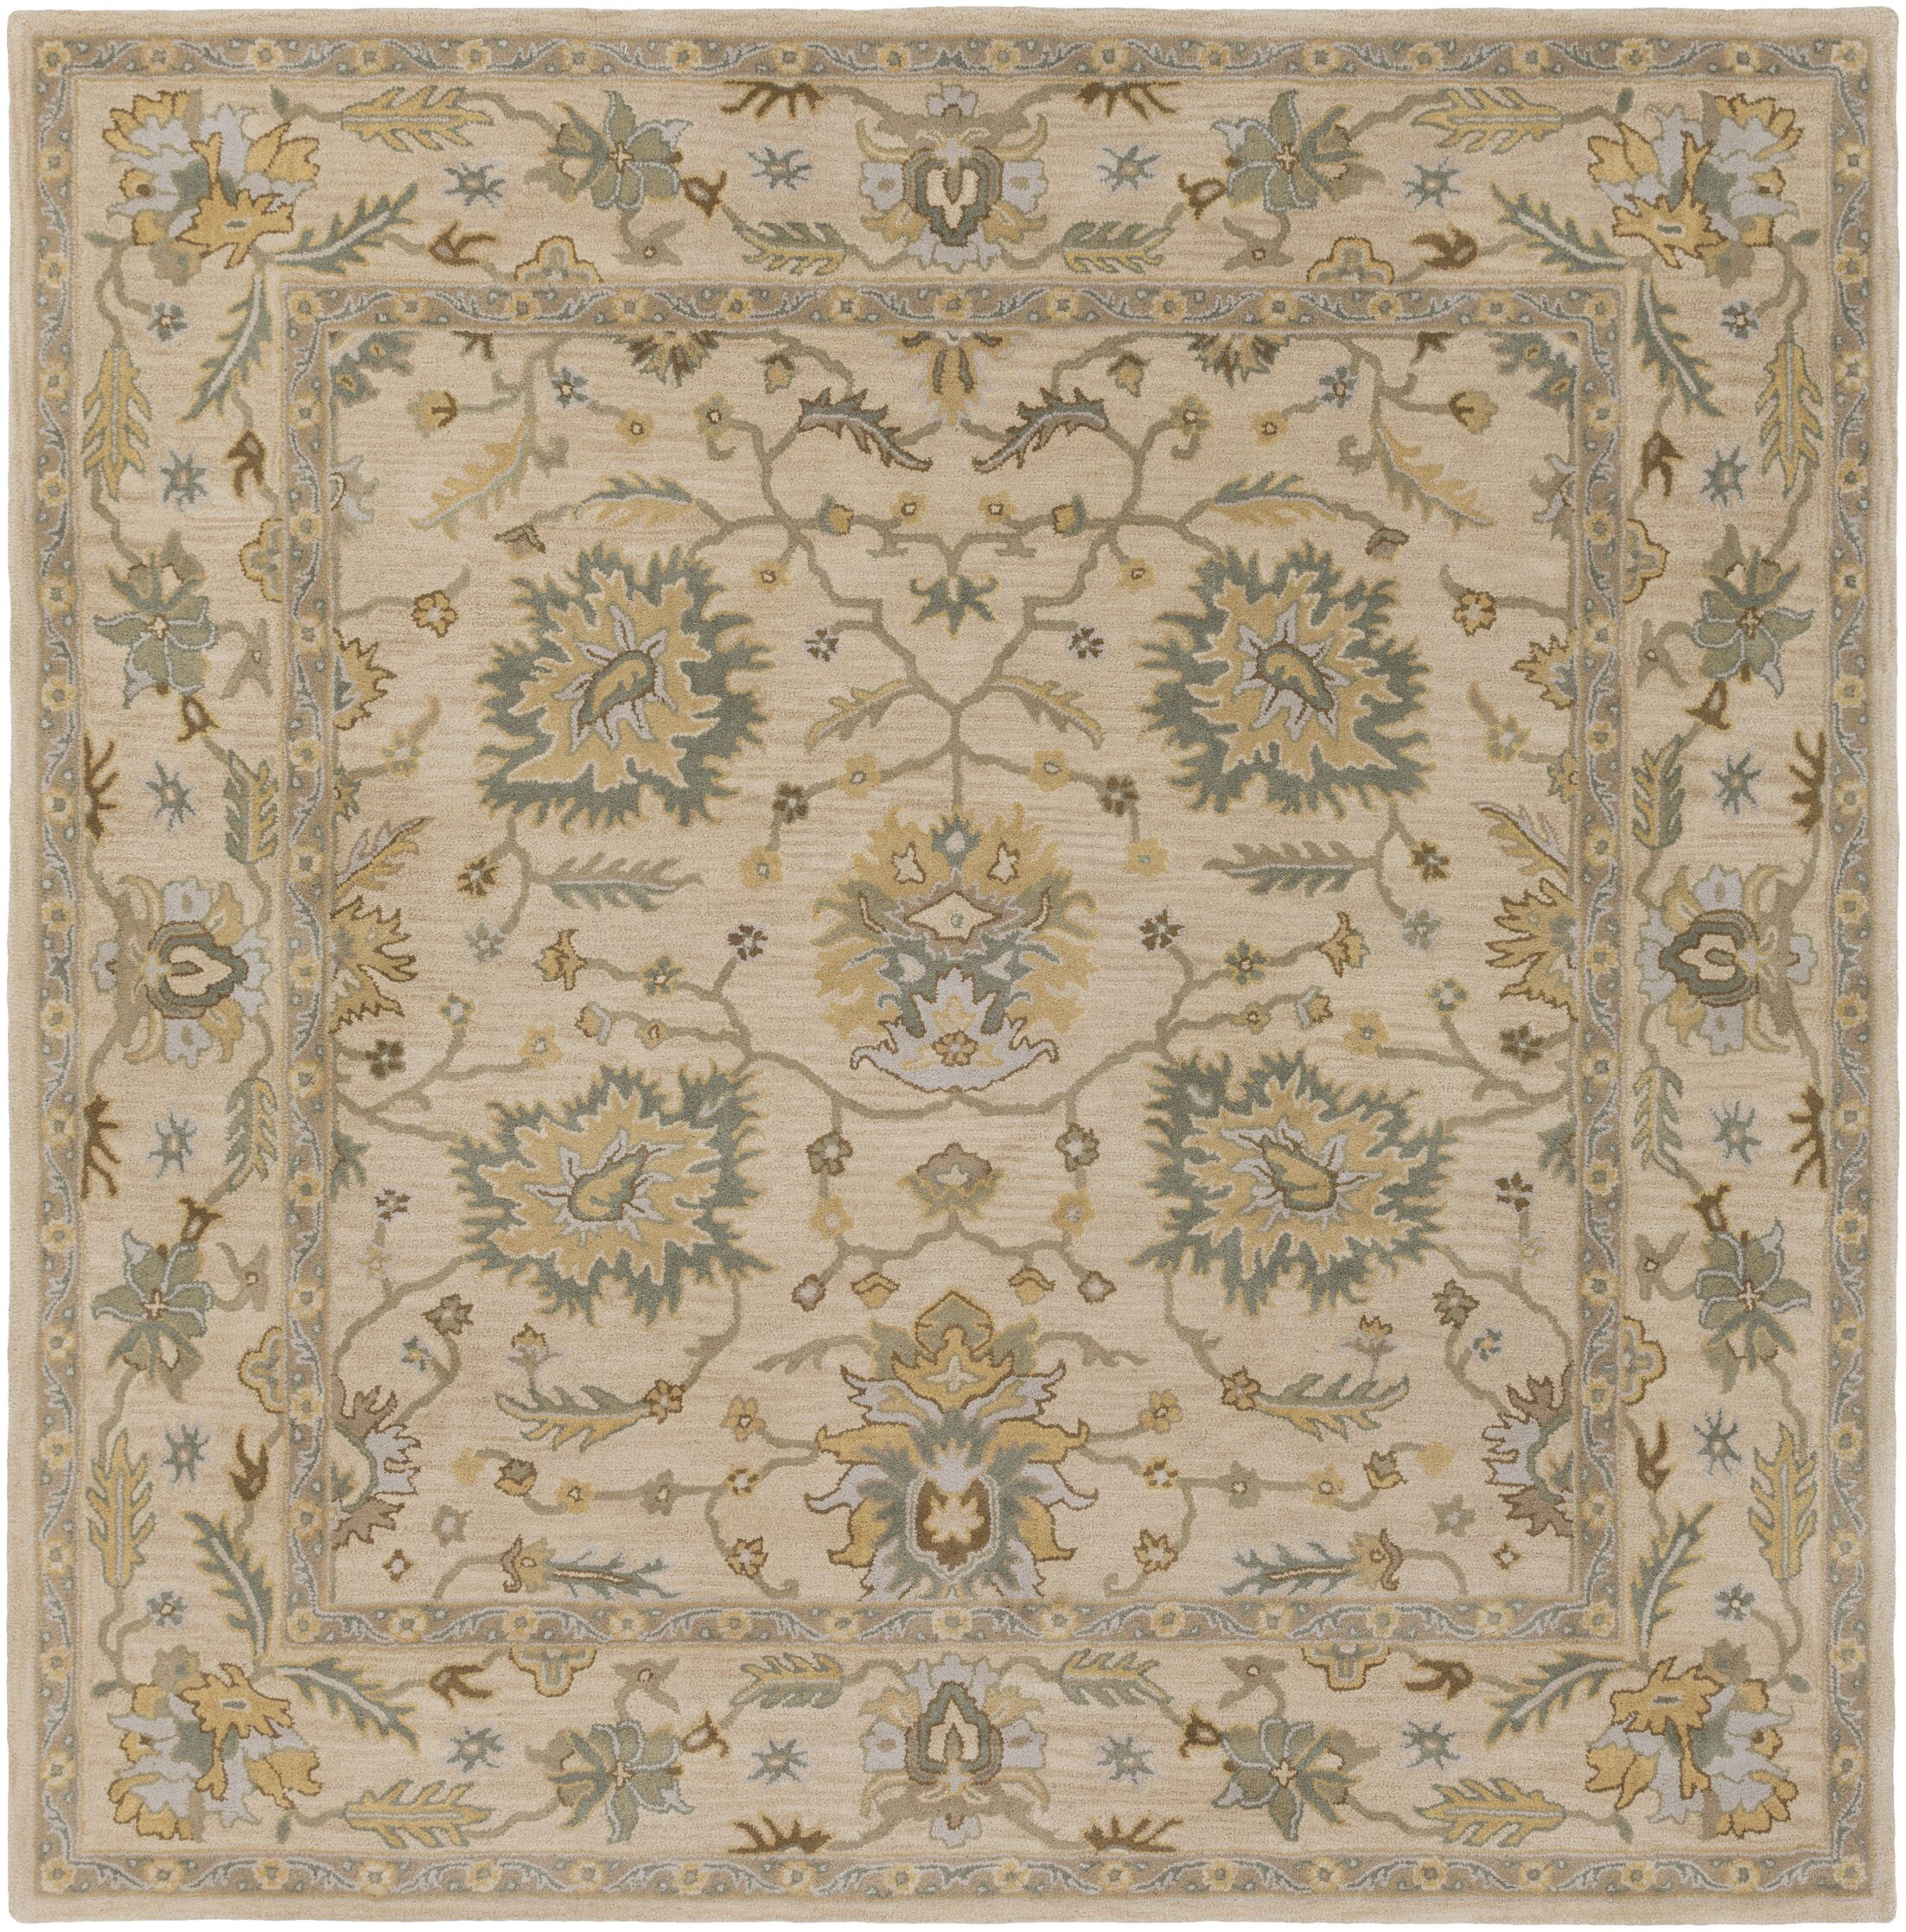 Millwood Hand-Tufted Green/Brown Area Rug Rug Size: Square 4'